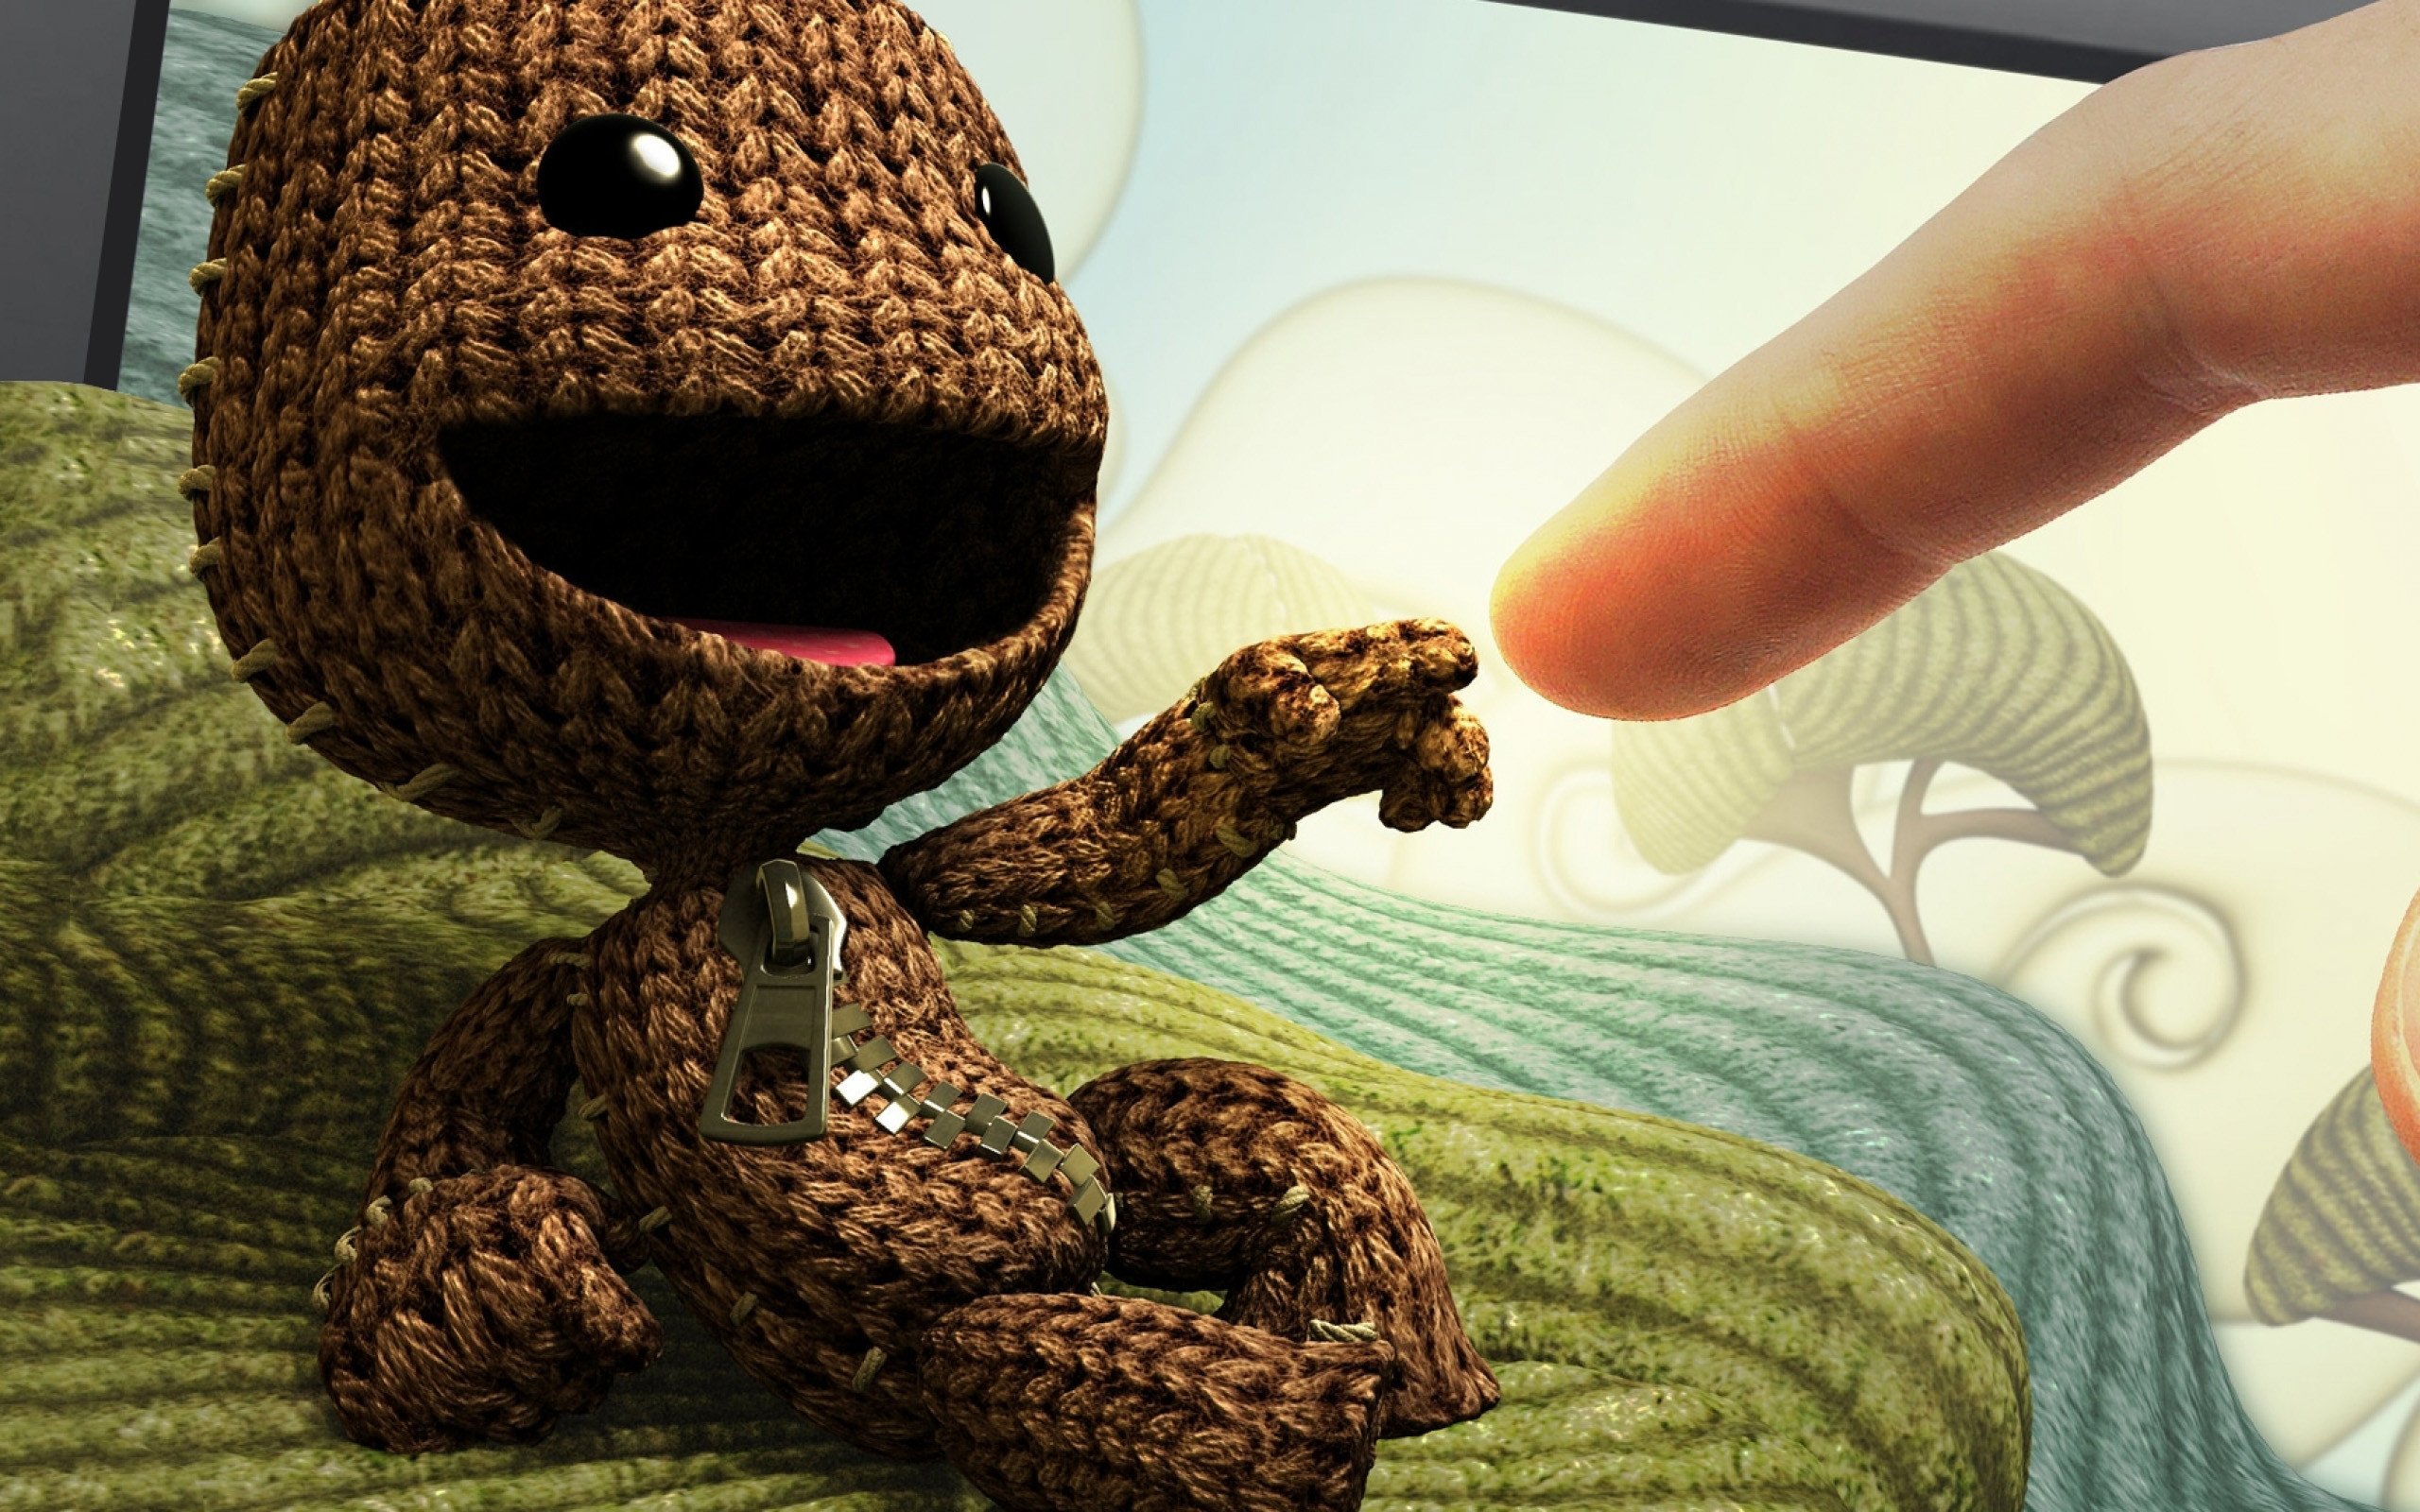 Little Big Planet Wallpaper: Little Big Planet Sackboy Wallpaper (81+ Images